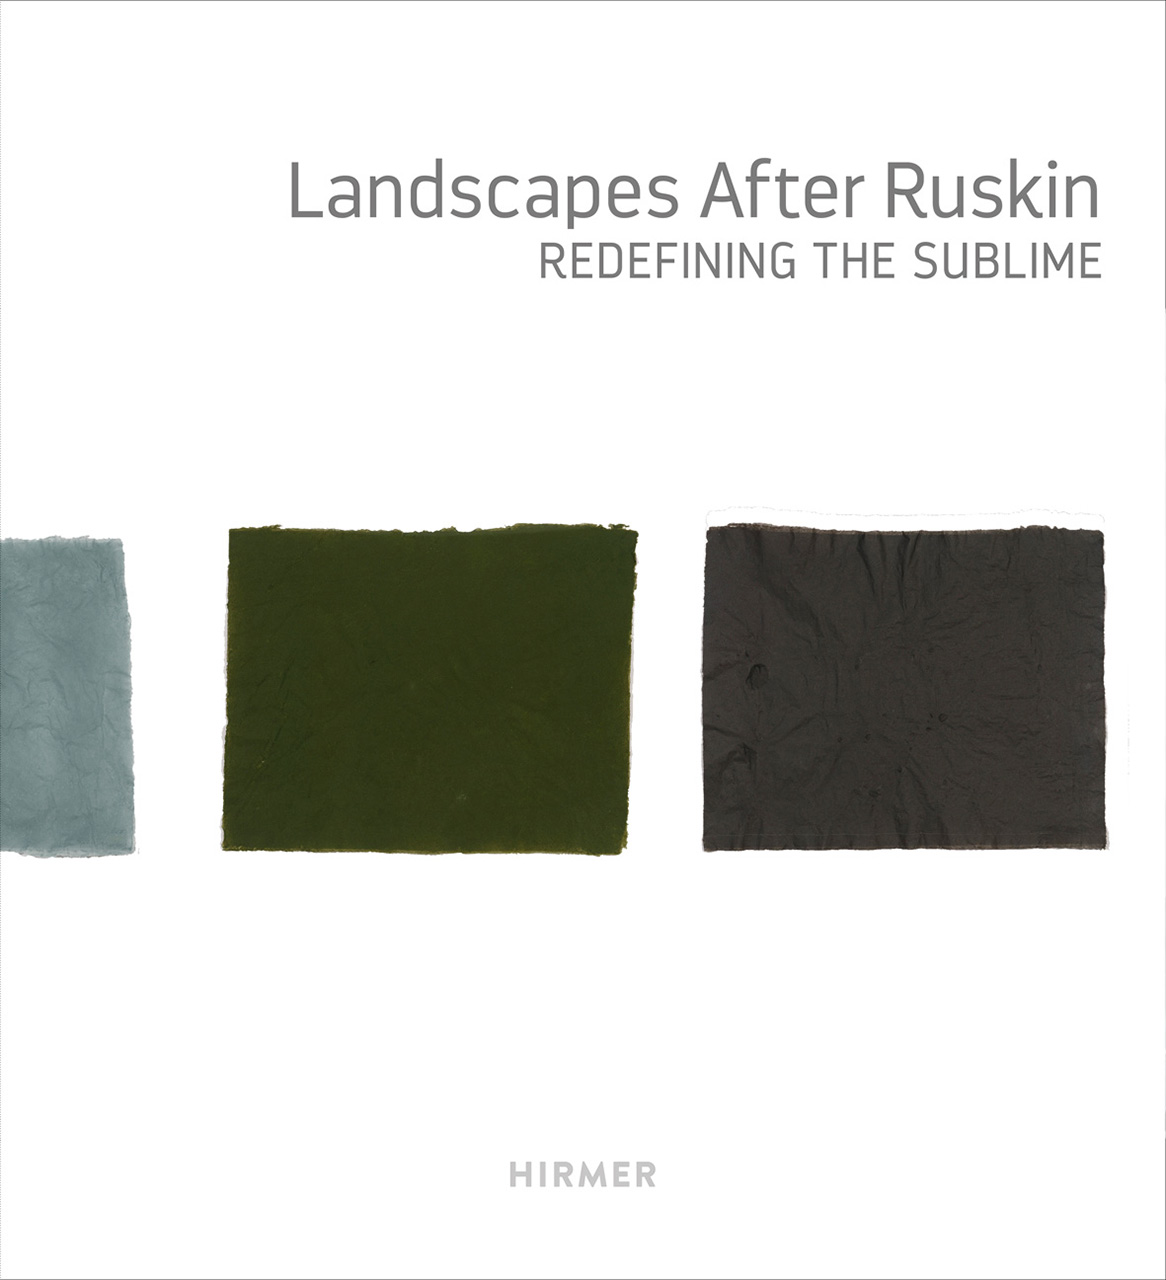 Landscapes after Ruskin: Redefining the Sublime